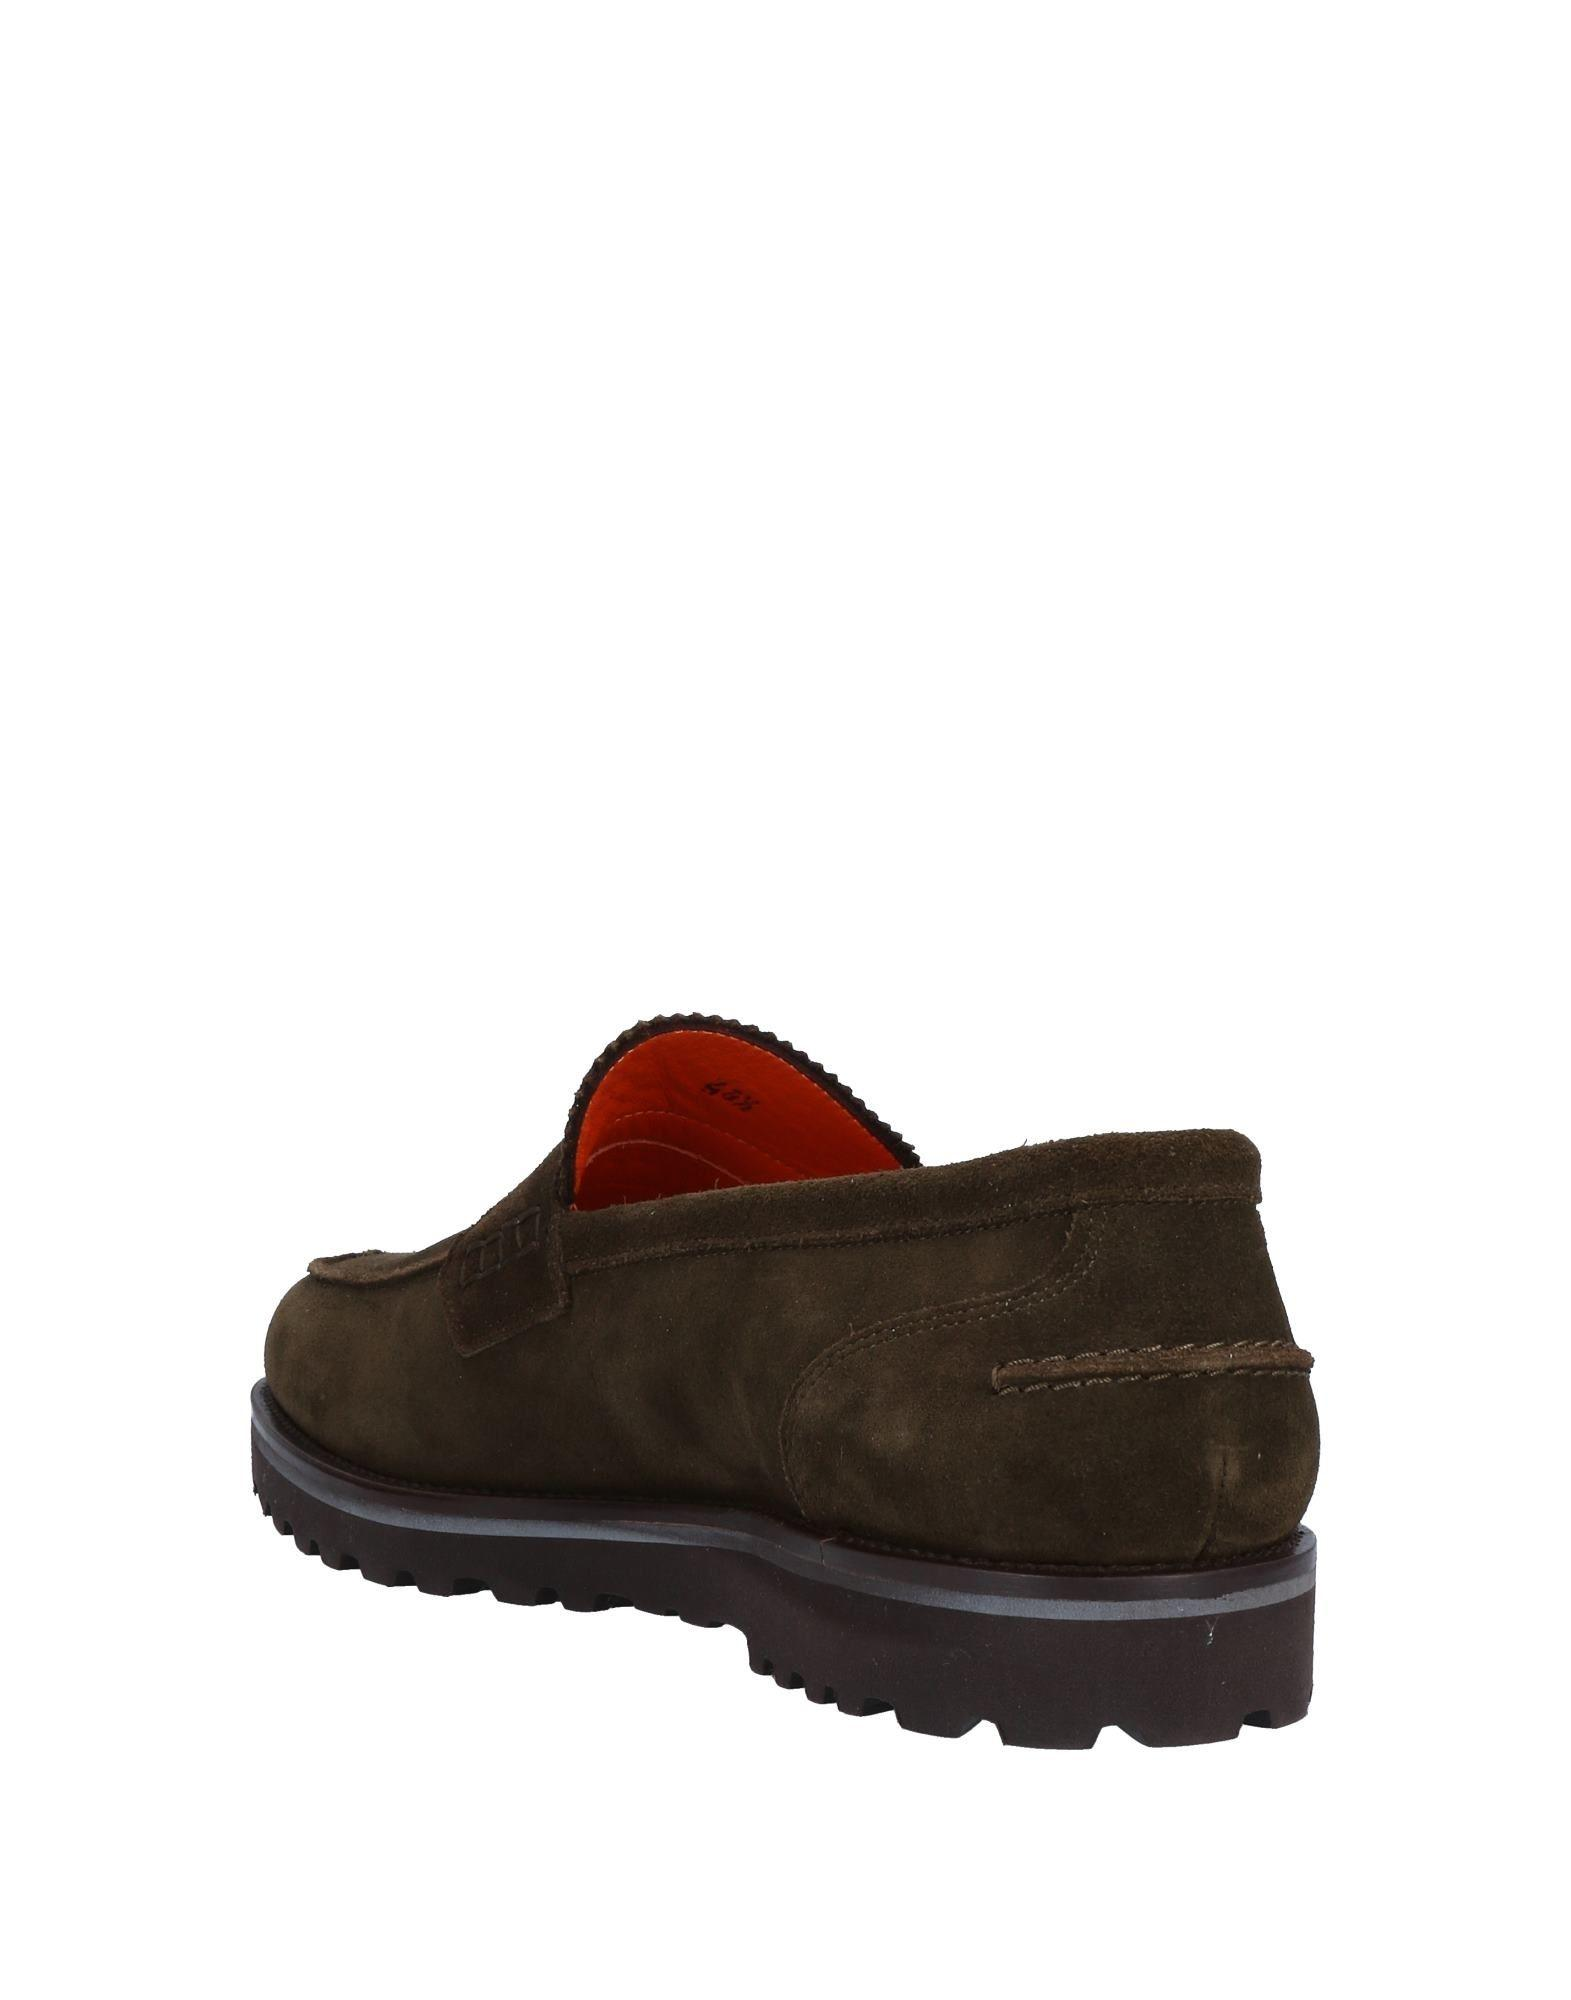 5f280bedbc2714 Lyst - Tricker's Loafer in Green for Men